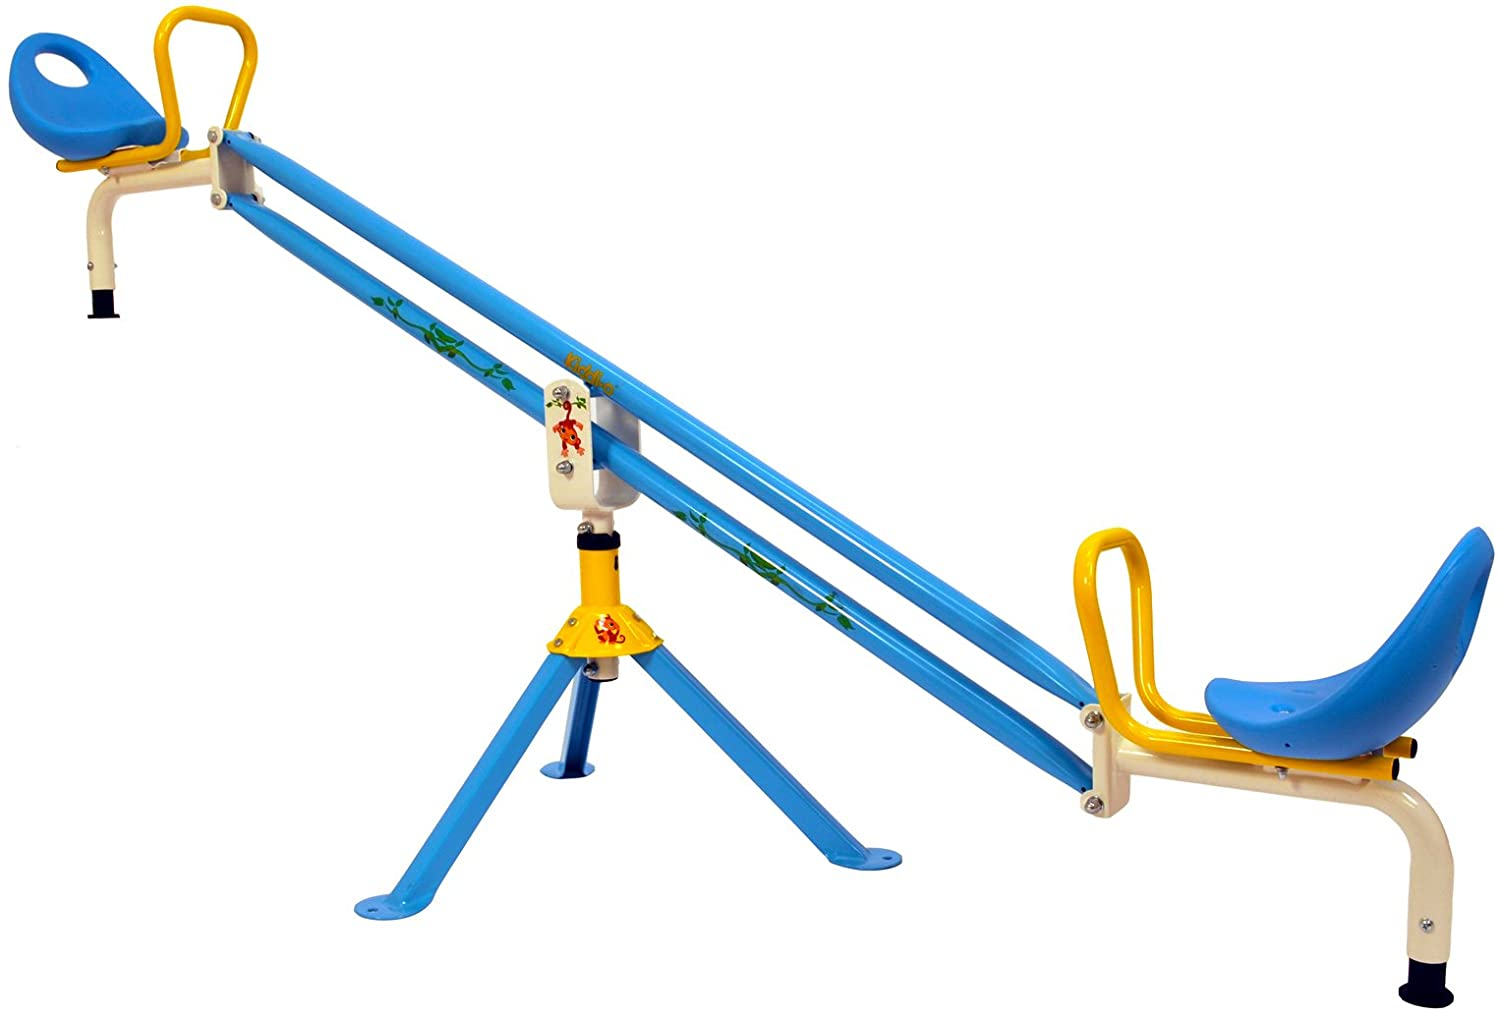 Amazon.com: Kettler Kiddi-o by Home Playground Equipment: Outdoor ...